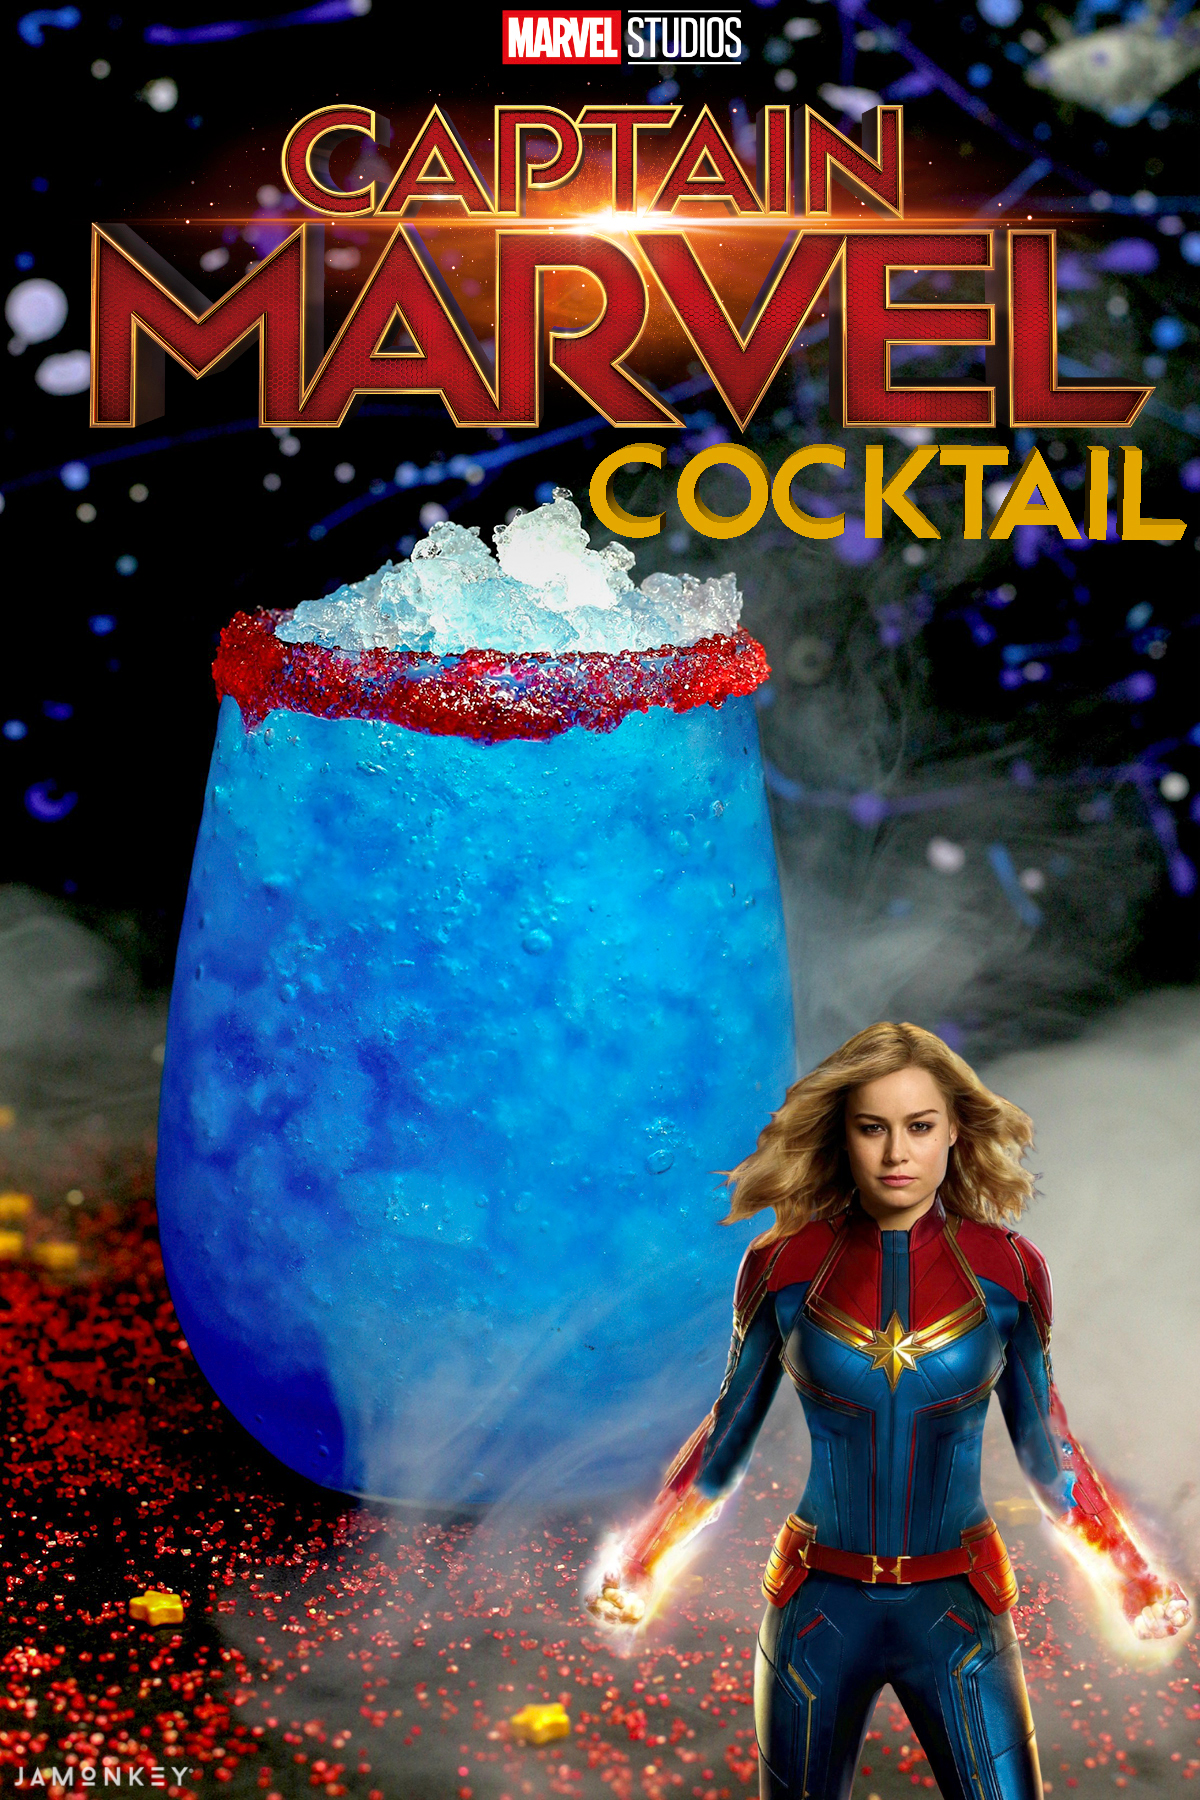 This Captain Marvel Cocktail is out of this world and perfect for Carol Danvers fans looking for a tasty alcoholic drink.  #CaptainMarvel #HigherFurtherFaster #Cocktail #Marvel #DrinkRecipe